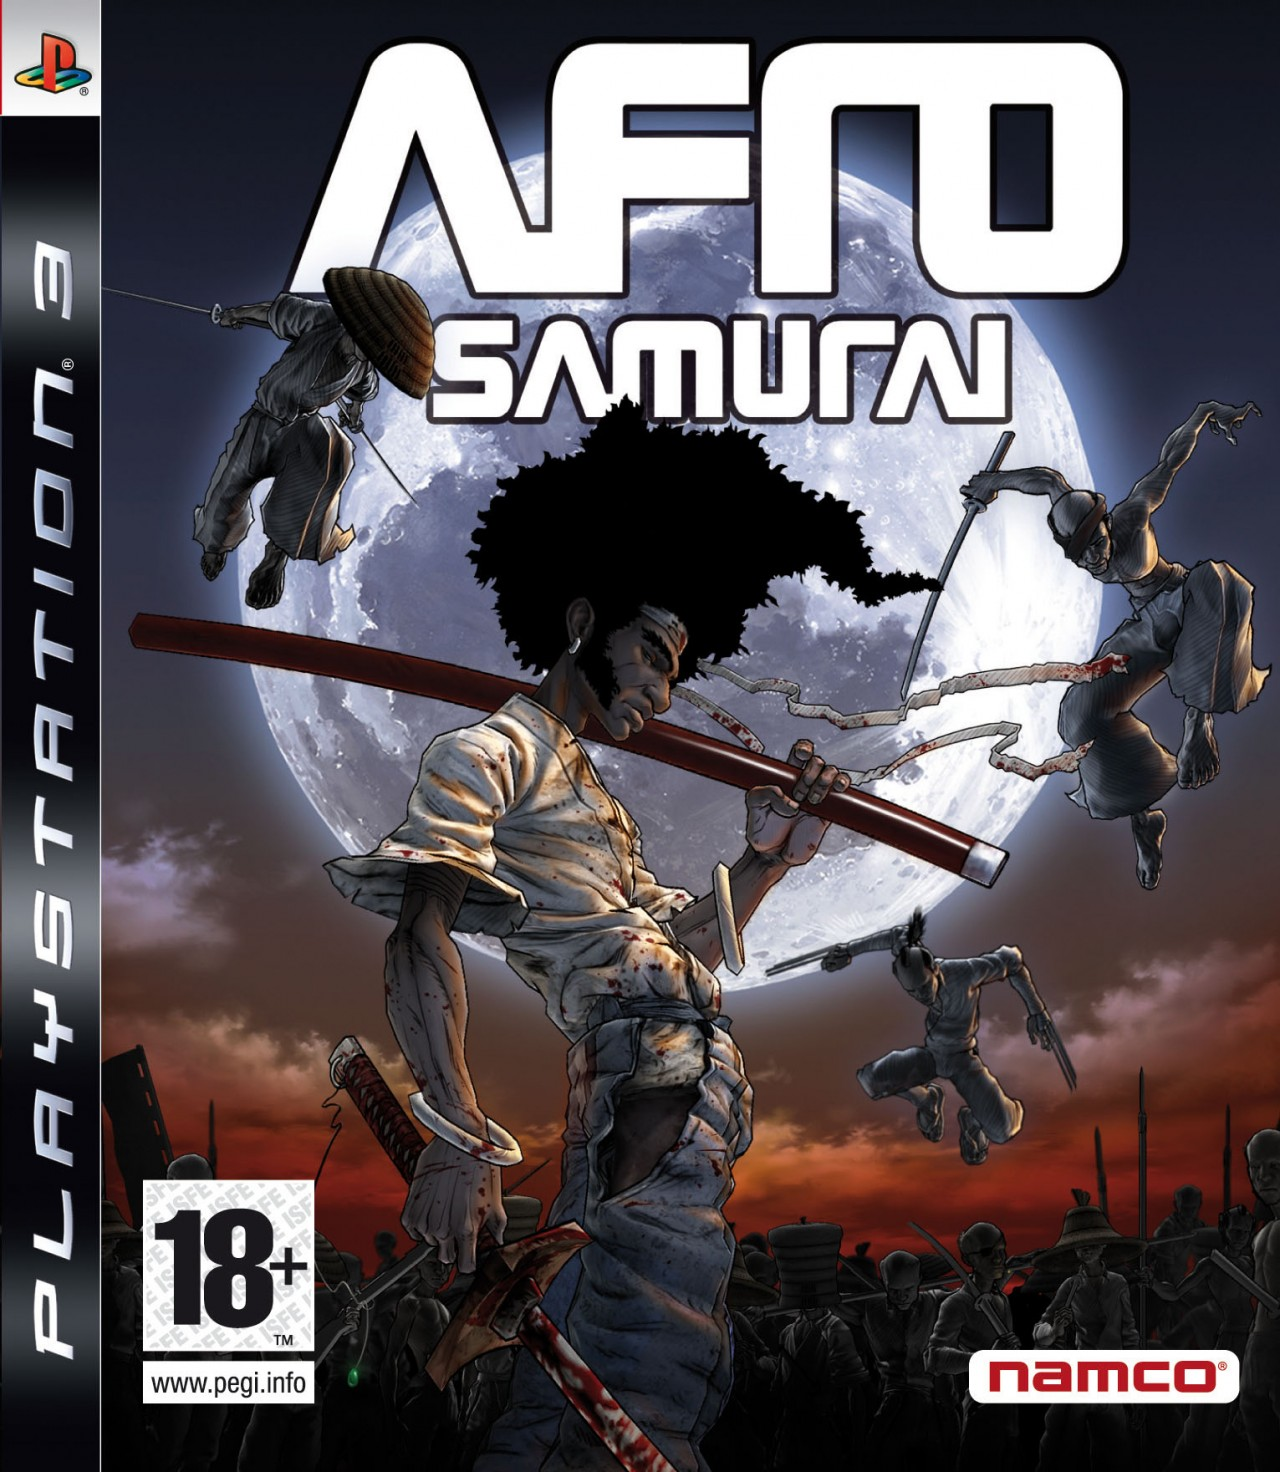 afro samurai ps3 argus jeux vid o d 39 occasion cotation jeux vid o prix et. Black Bedroom Furniture Sets. Home Design Ideas